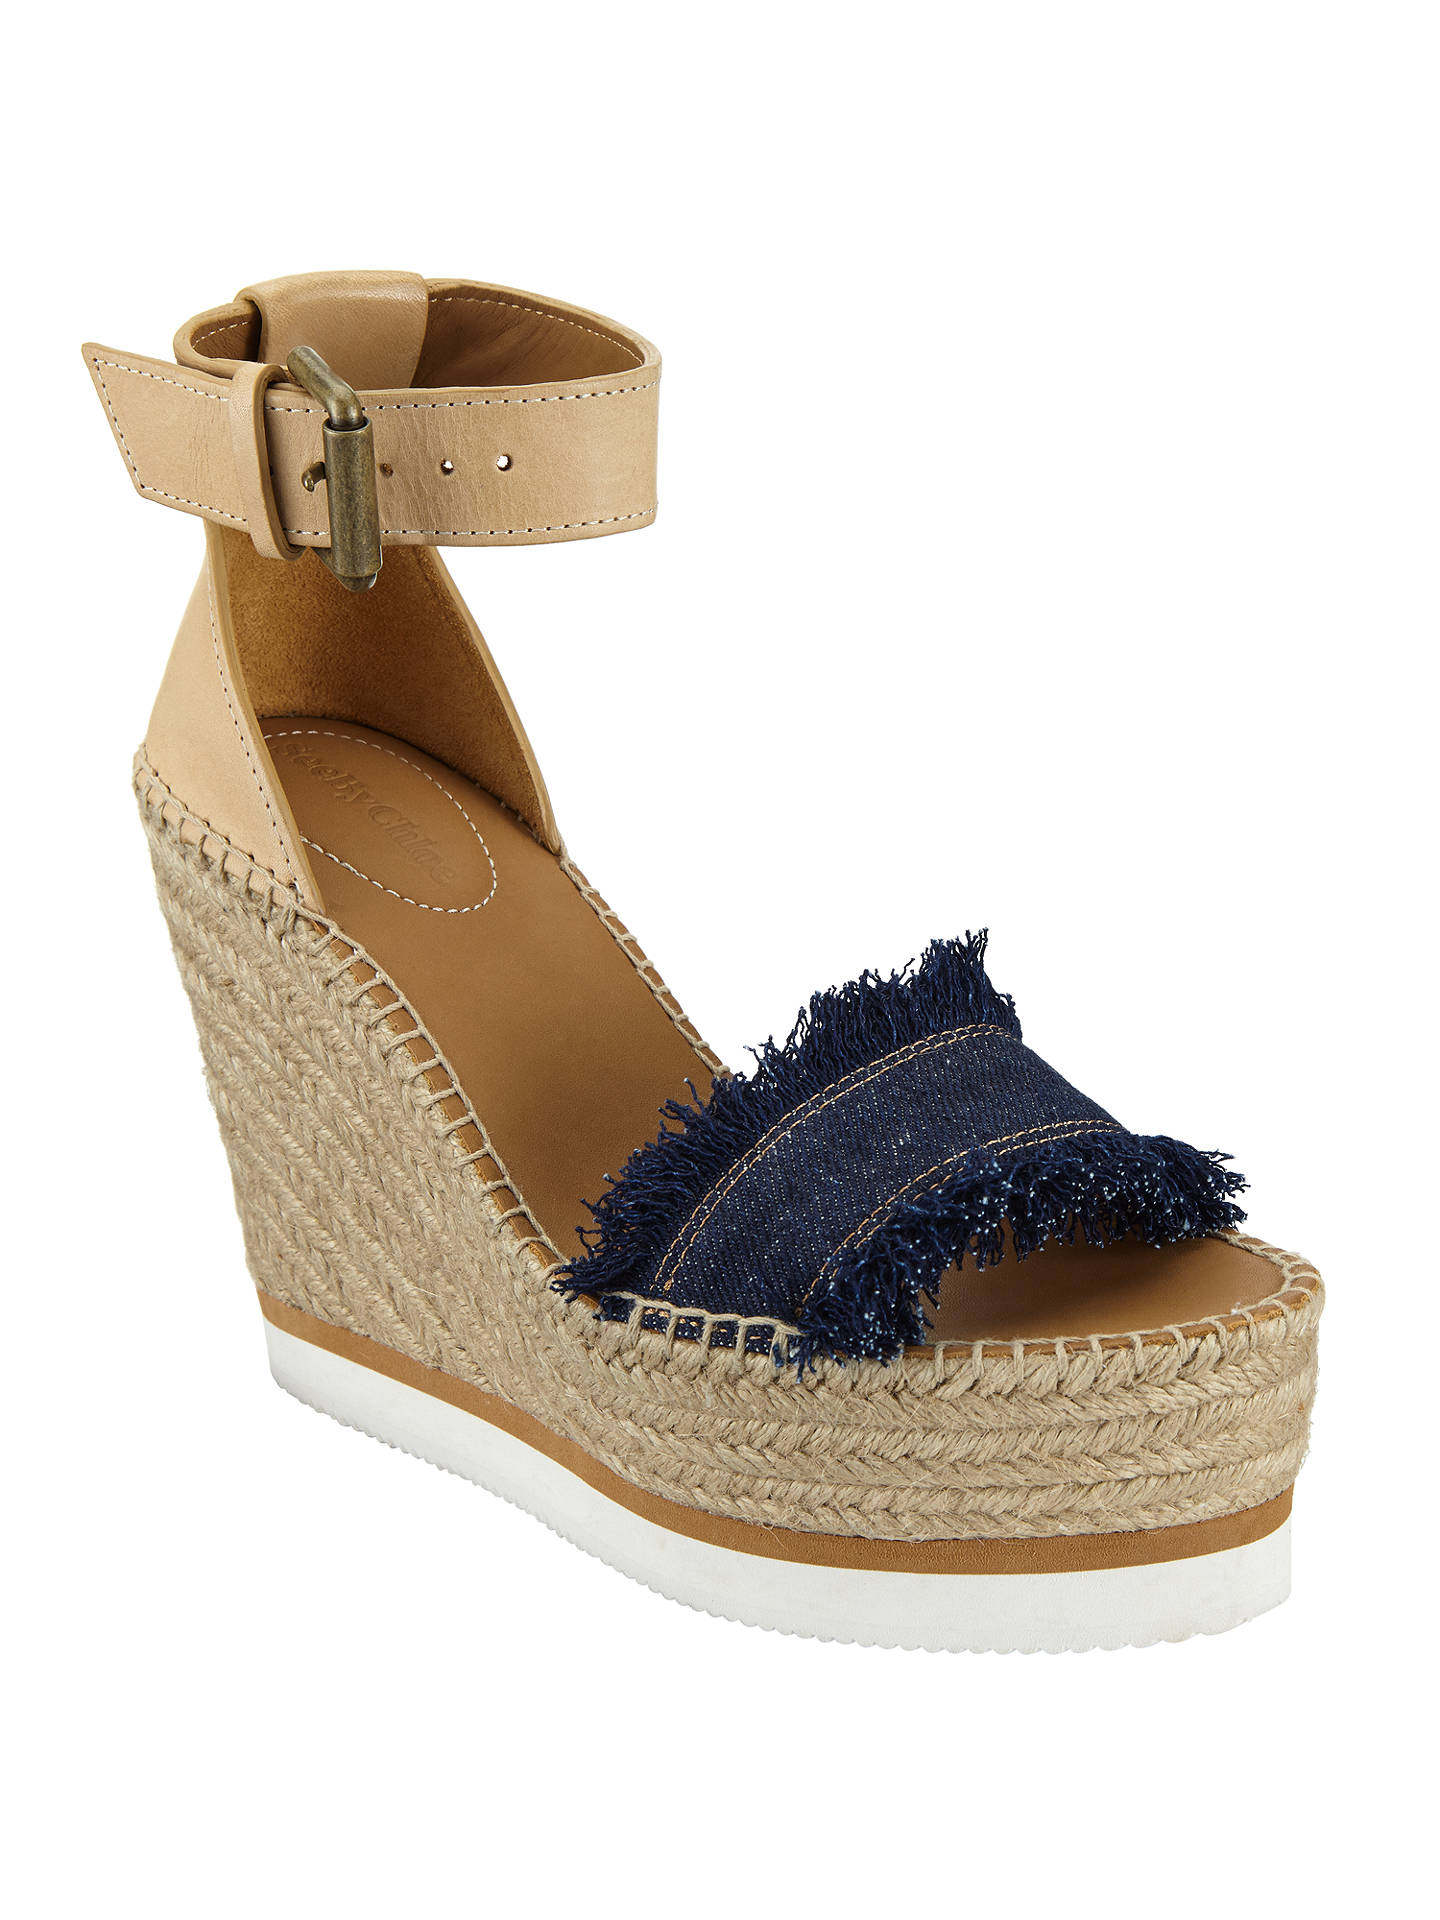 b4d95102aa5 Buy See by Chloé Glyn Wedge Heeled Espadrille Sandals